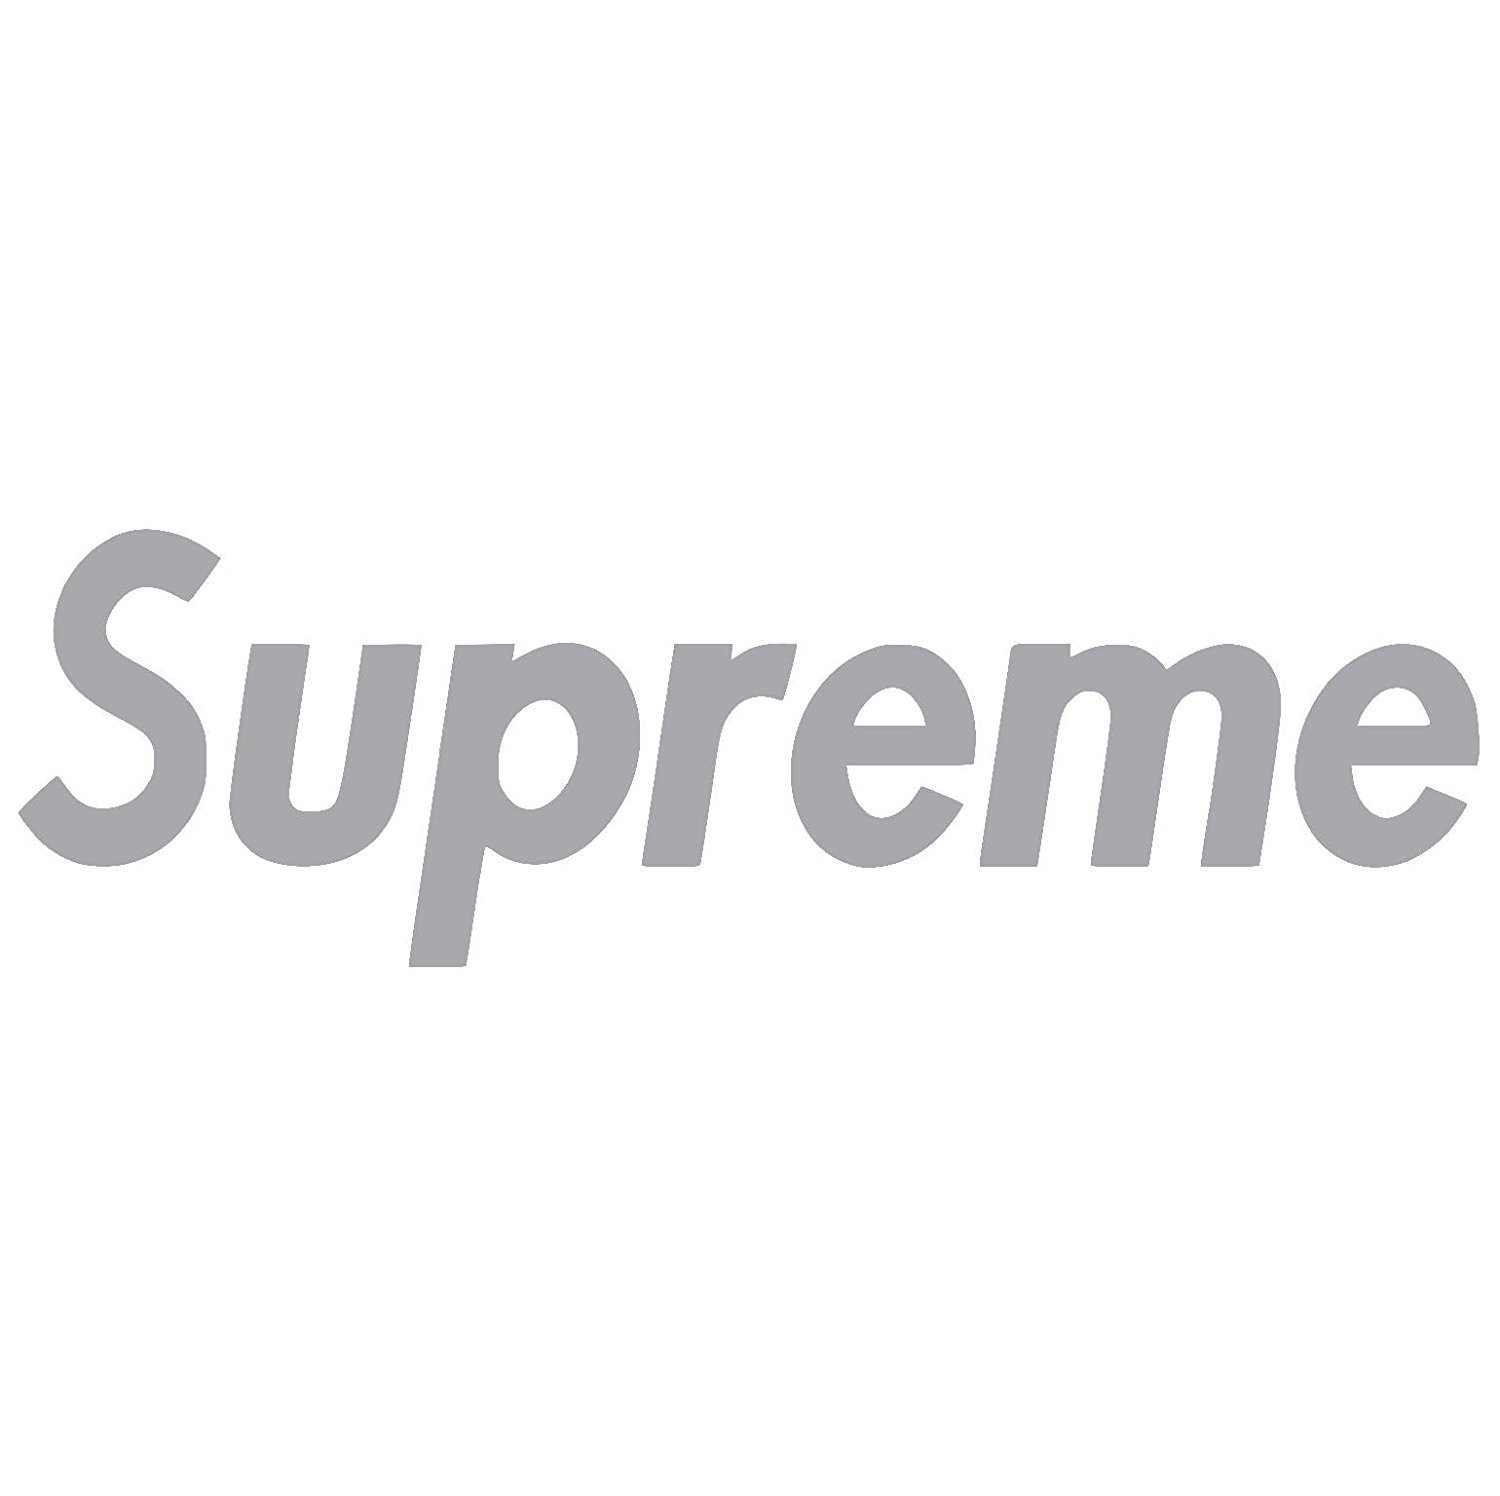 Amazon Com Supreme Clothing Logo No Bac 773017 Png Images Pngio